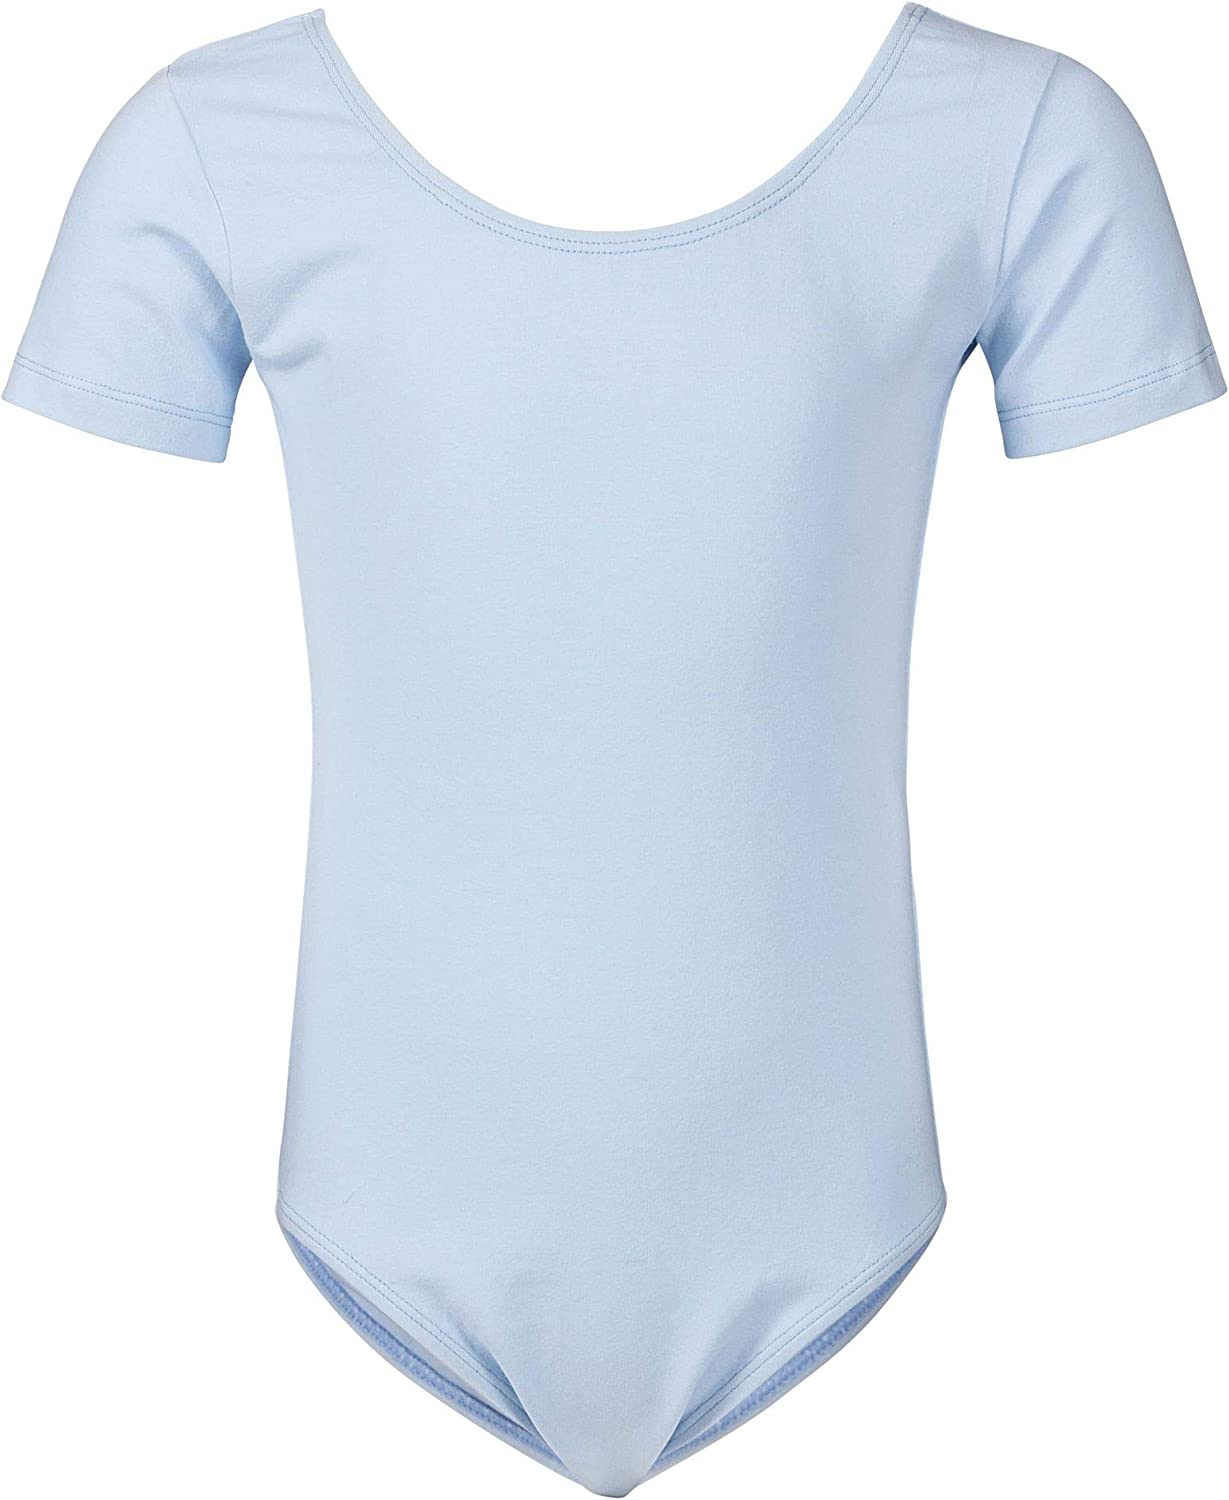 Short-Sleeved Made of Soft and Durable Cotton Blend tanzmuster Girls Ballet Leotard Sally